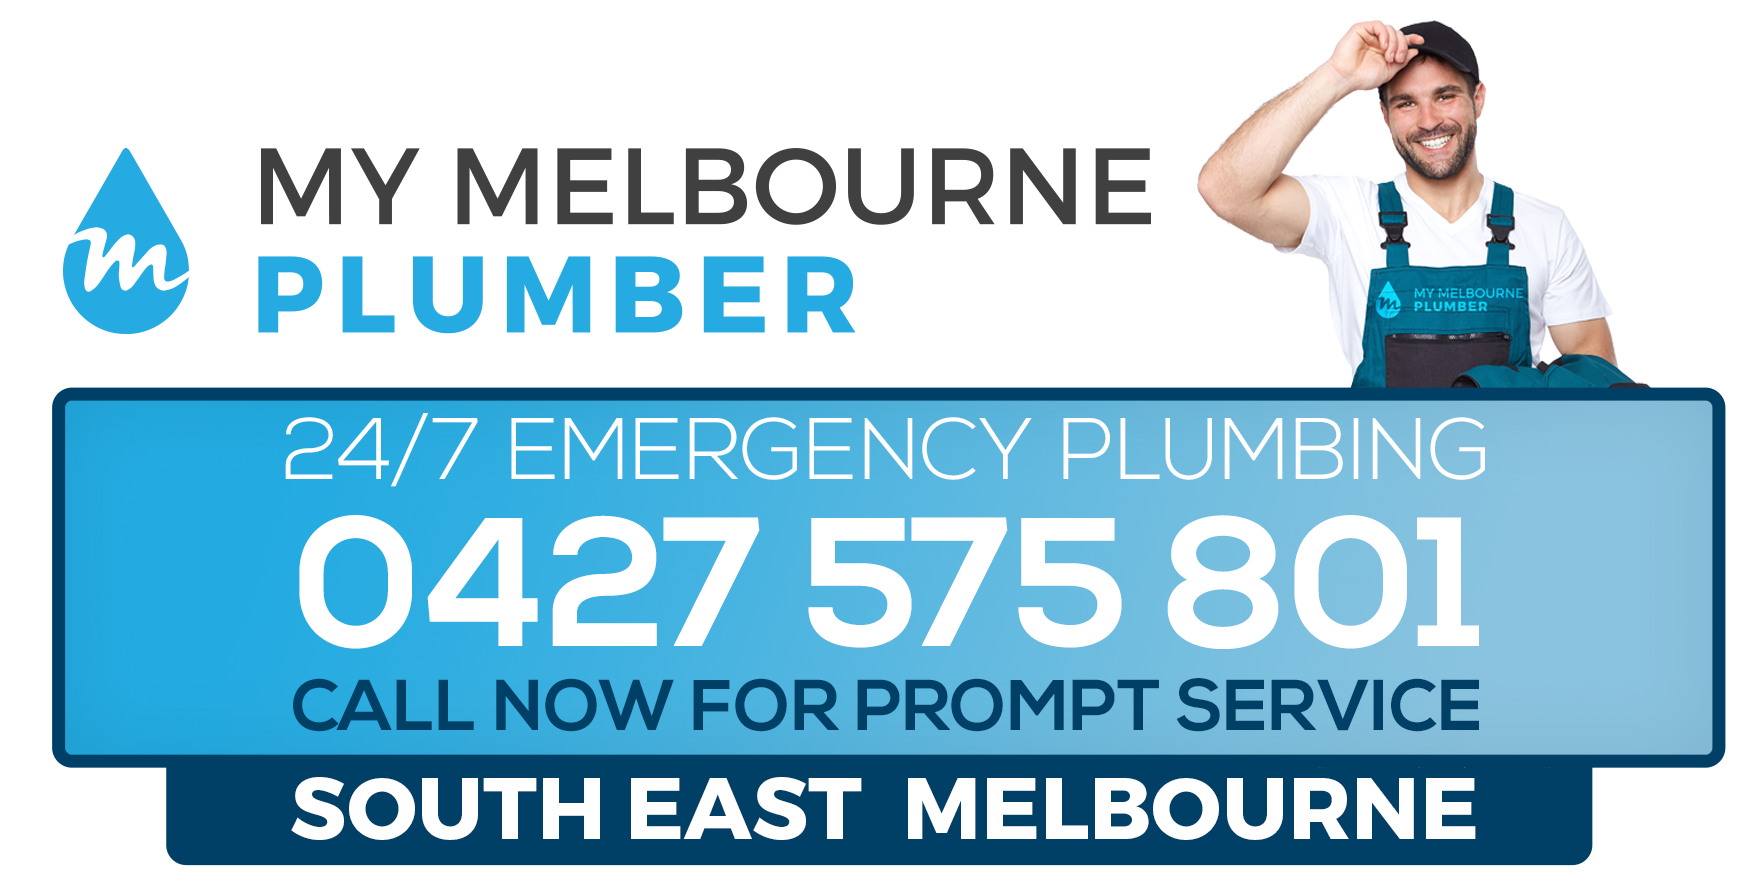 Plumbers South East Melbourne